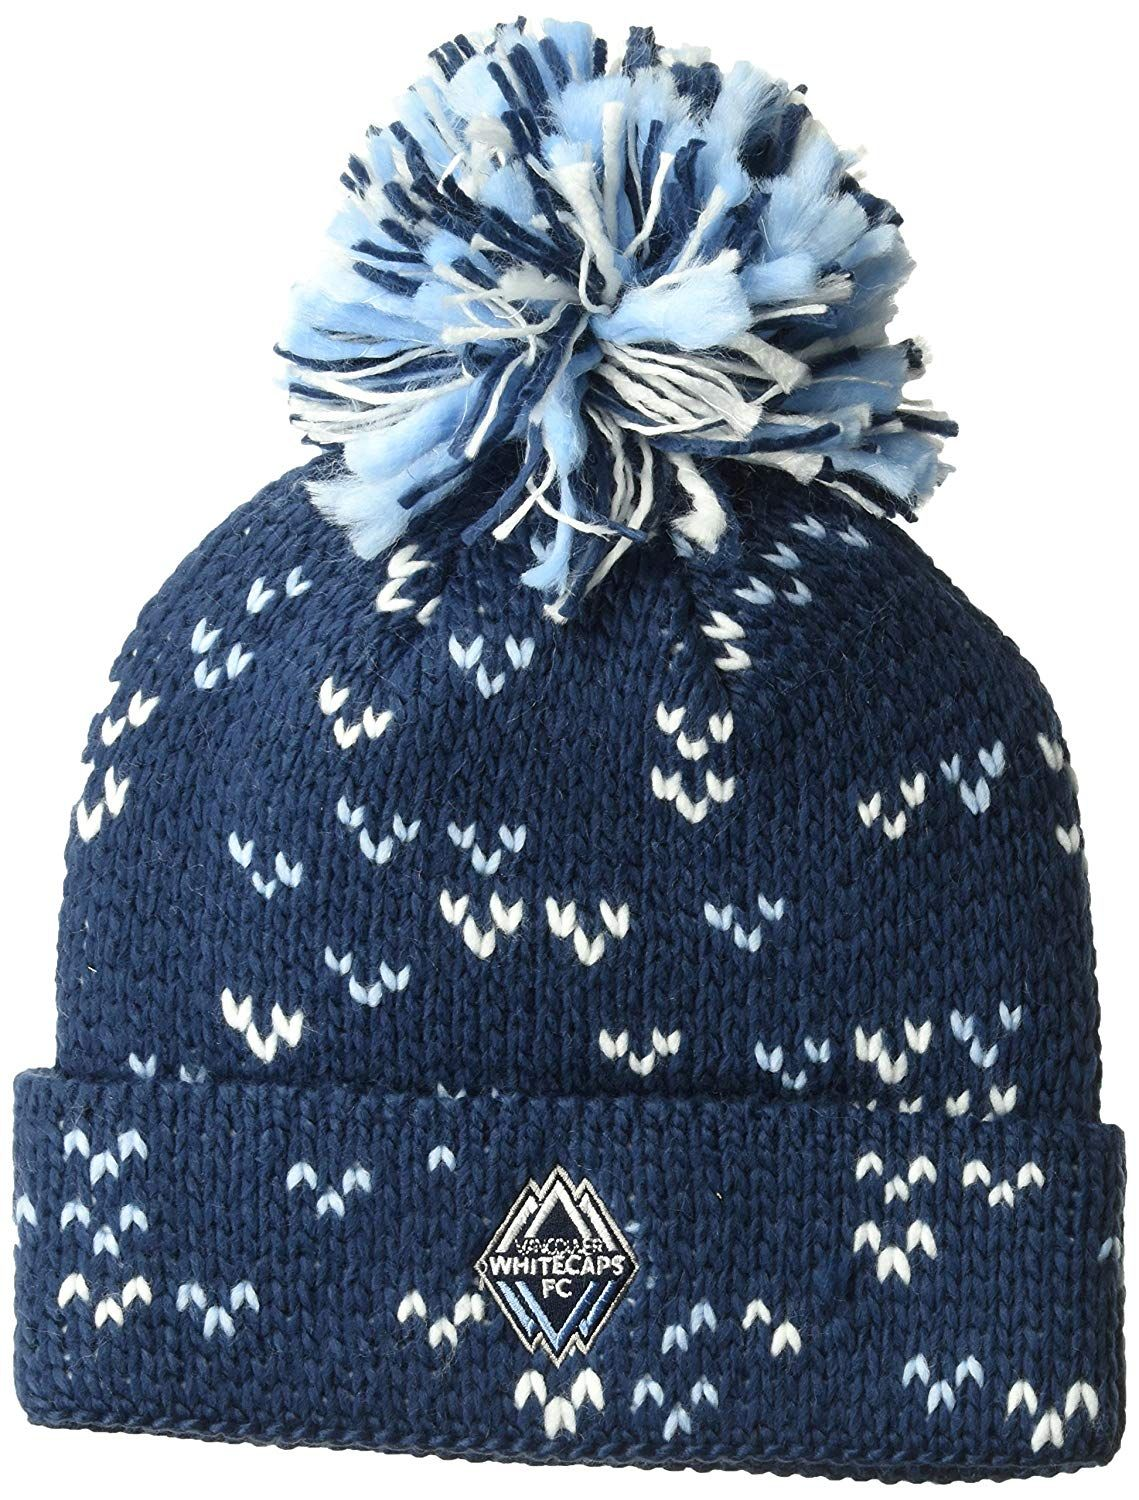 2f566fa7d56 967c0631614 adidas MLS Vancouver Whitecaps Women s Fan Wear Cuffed Pom Knit  Beanie ...